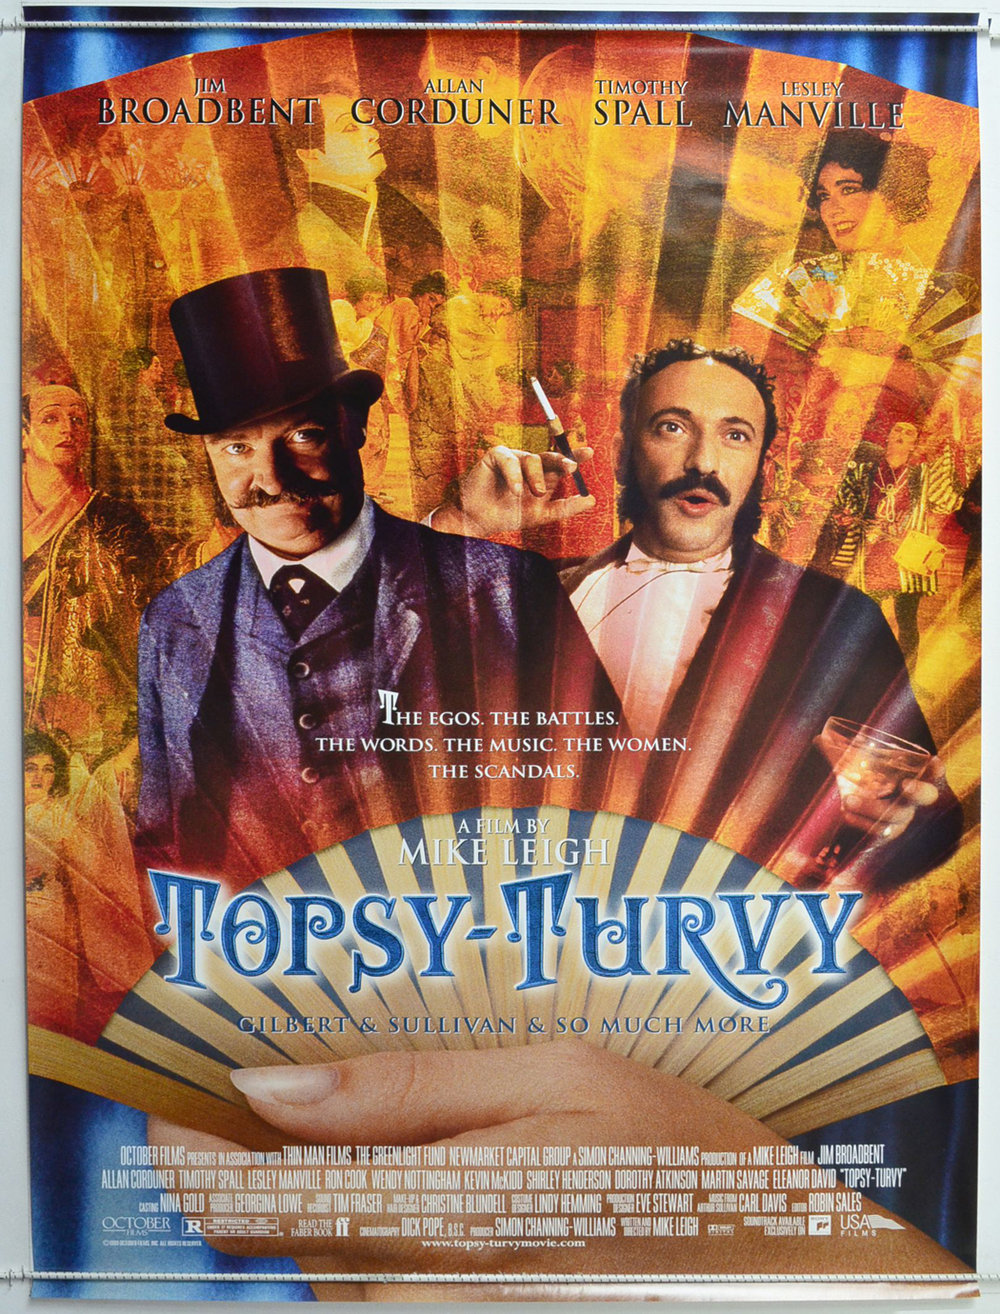 Topsy-Turvy (1999) - Directed by: Mike LeighStarring: Jim Broadbent, Allan Corduner, Timothy Spall, Lesley MansvilleRated: R for a Scene of Risque NudityRunning Time: 2 h 34 mTMM Score: 4.5 stars out of 5STRENGTHS: Mise-En-Scene, Direction, Acting, Production Design, CharactersWEAKNESSES: Length, Cultural Appropriation (?)